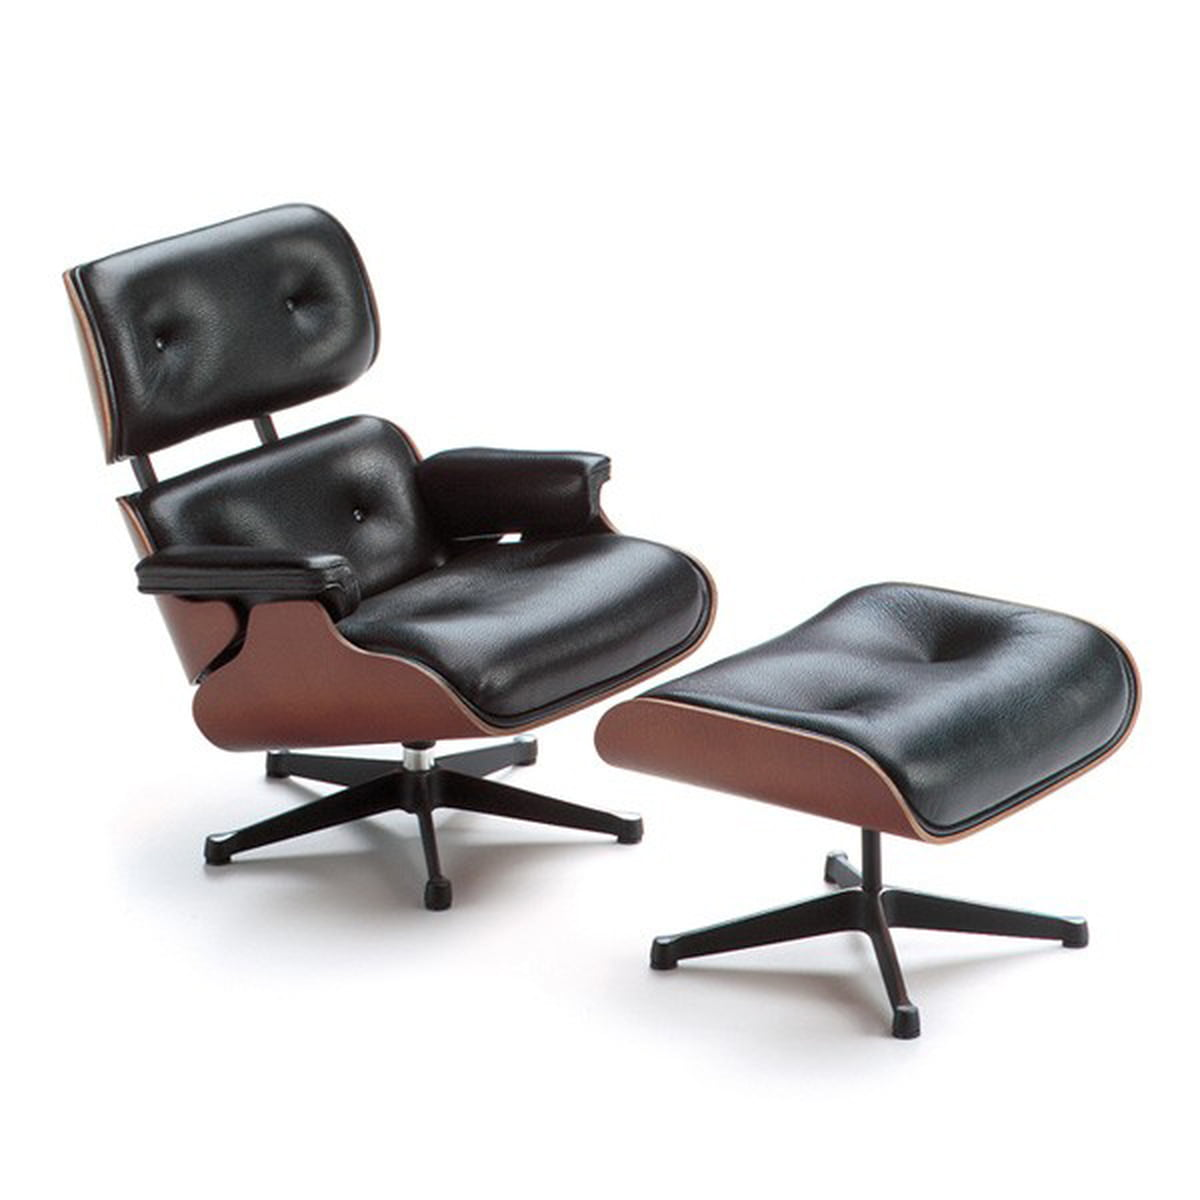 miniature lounge chair ottoman by vitra. Black Bedroom Furniture Sets. Home Design Ideas